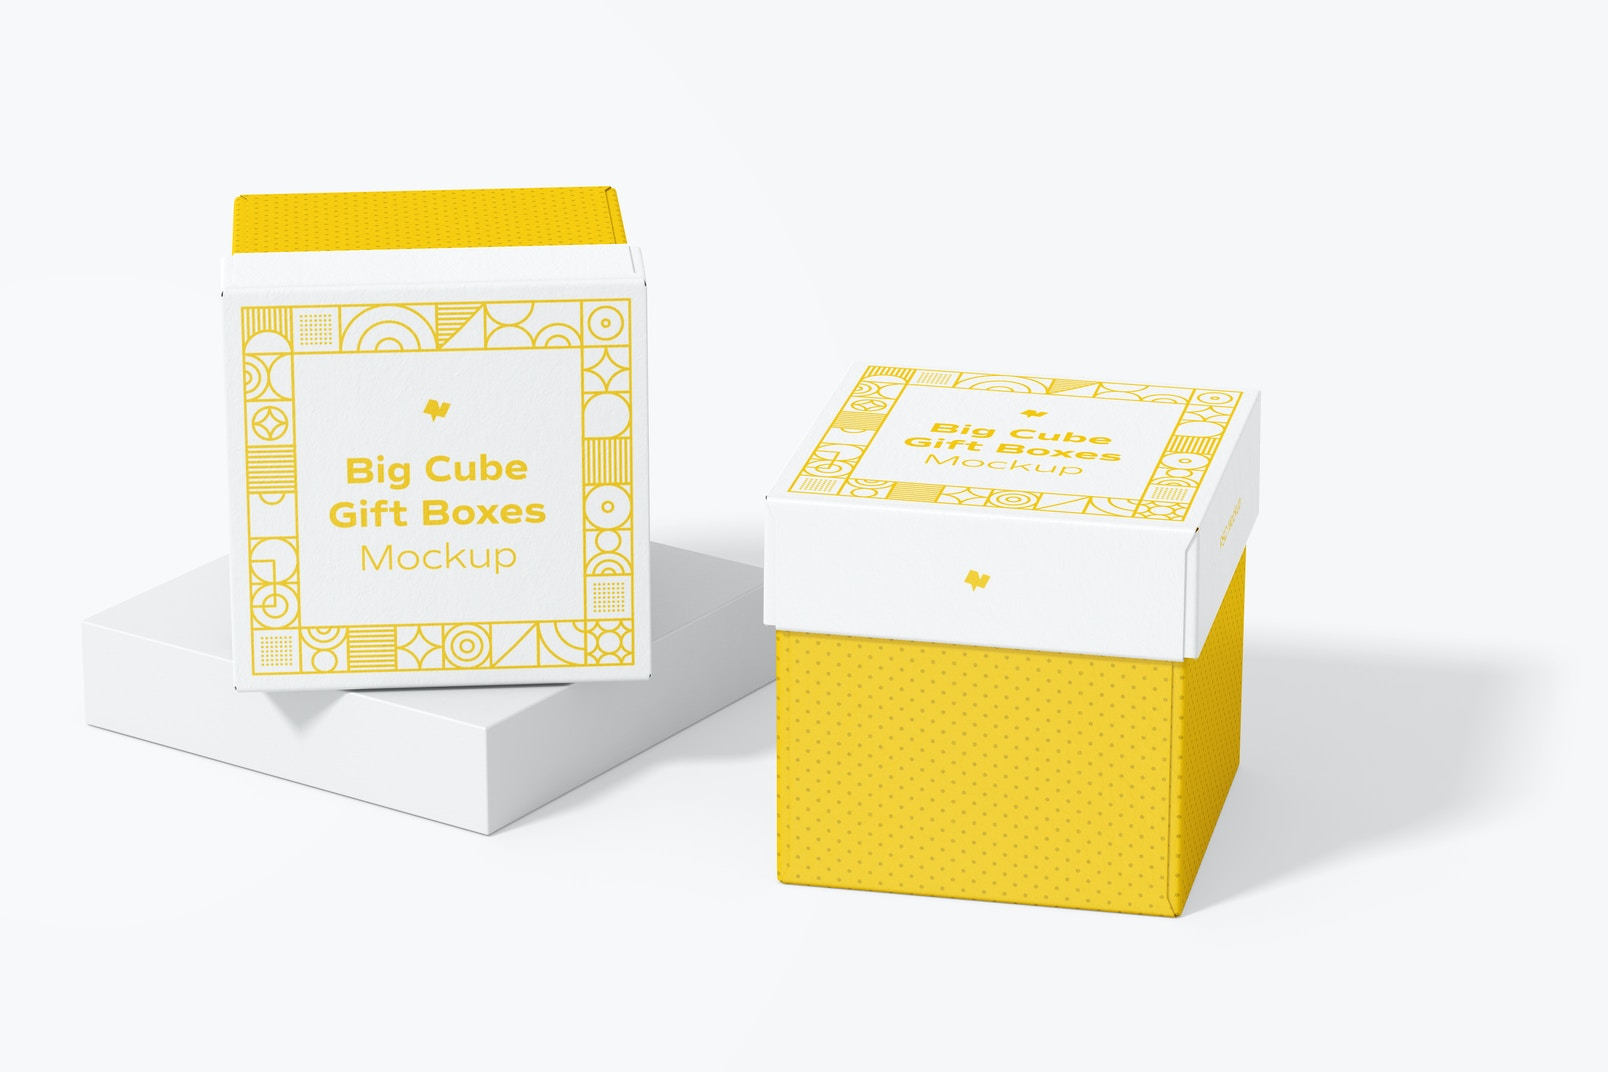 Big Cube Gift Boxes Mockup, Perspective